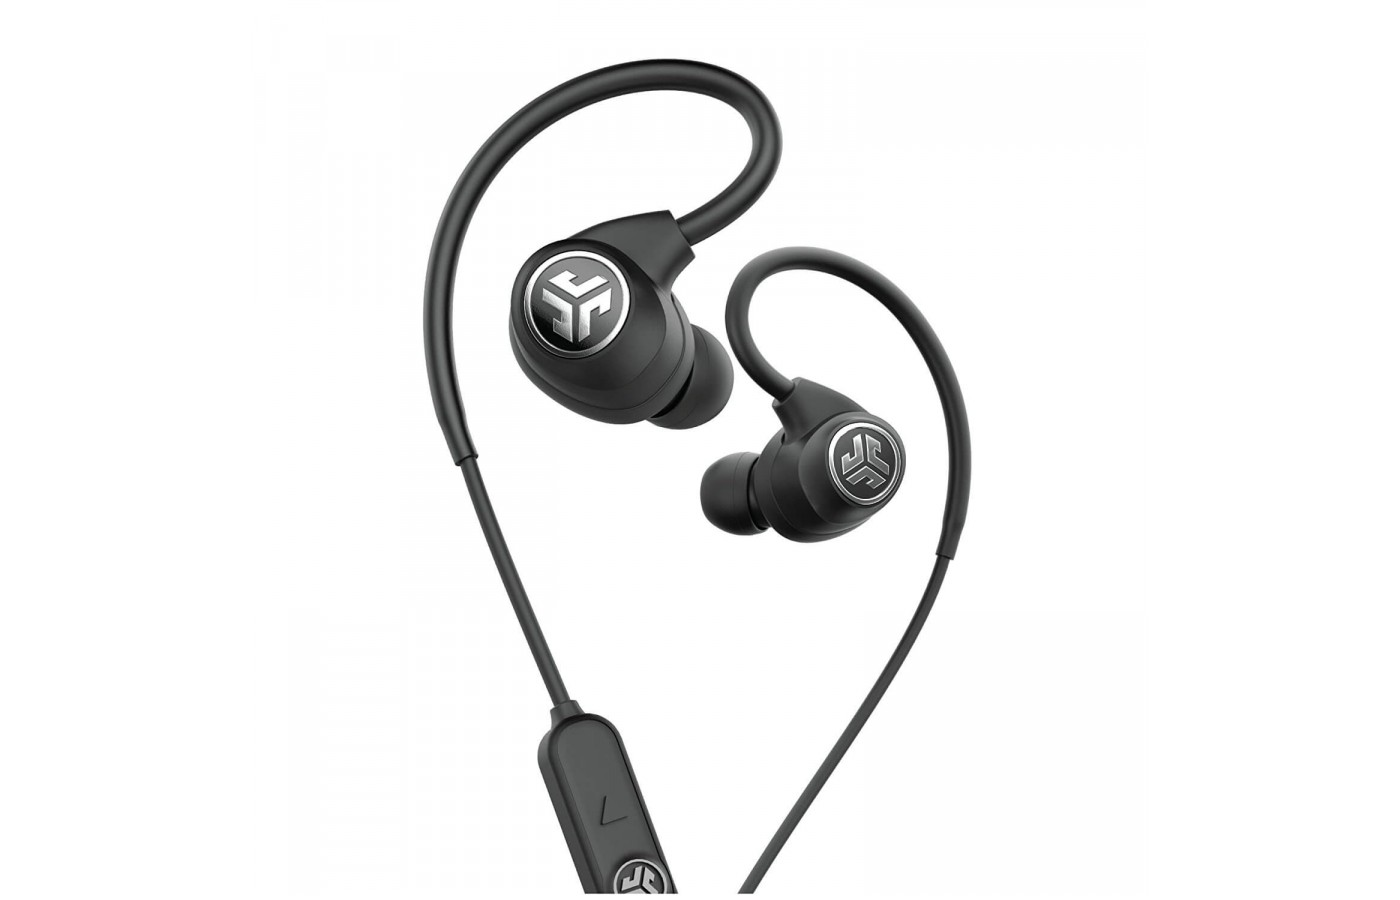 The The JLab Epic Sport headphones feature an in-line remote